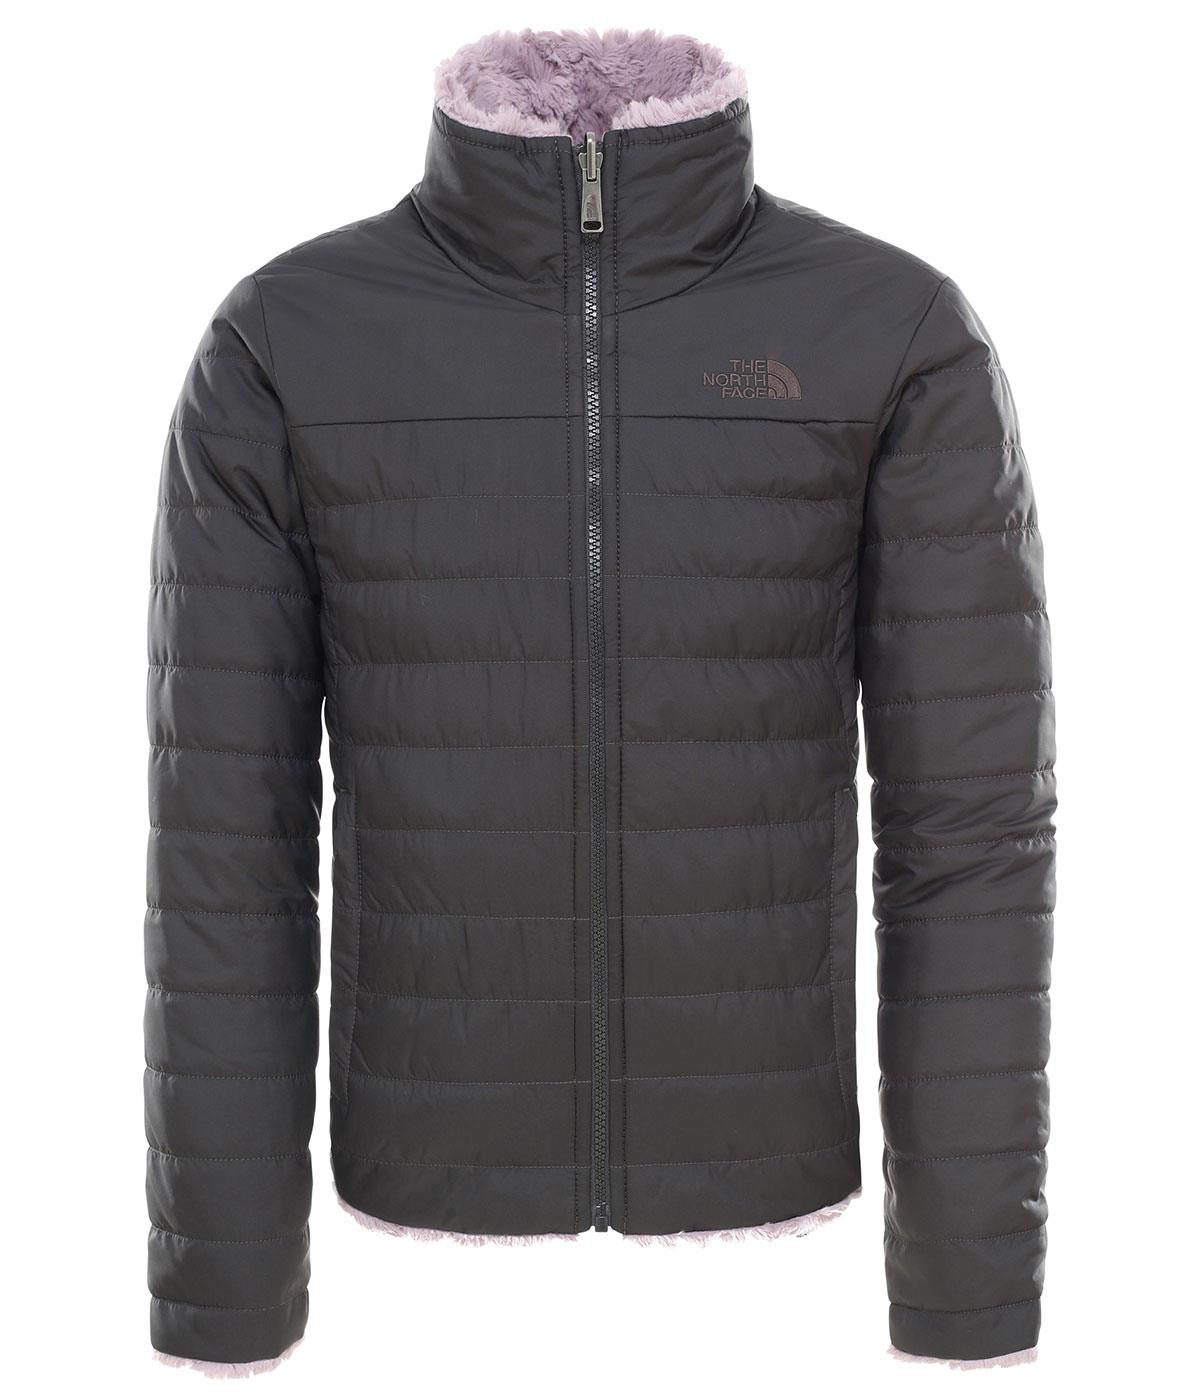 The North Face  Rev Msbd Swrl ceket nf0A3Y7E0C51